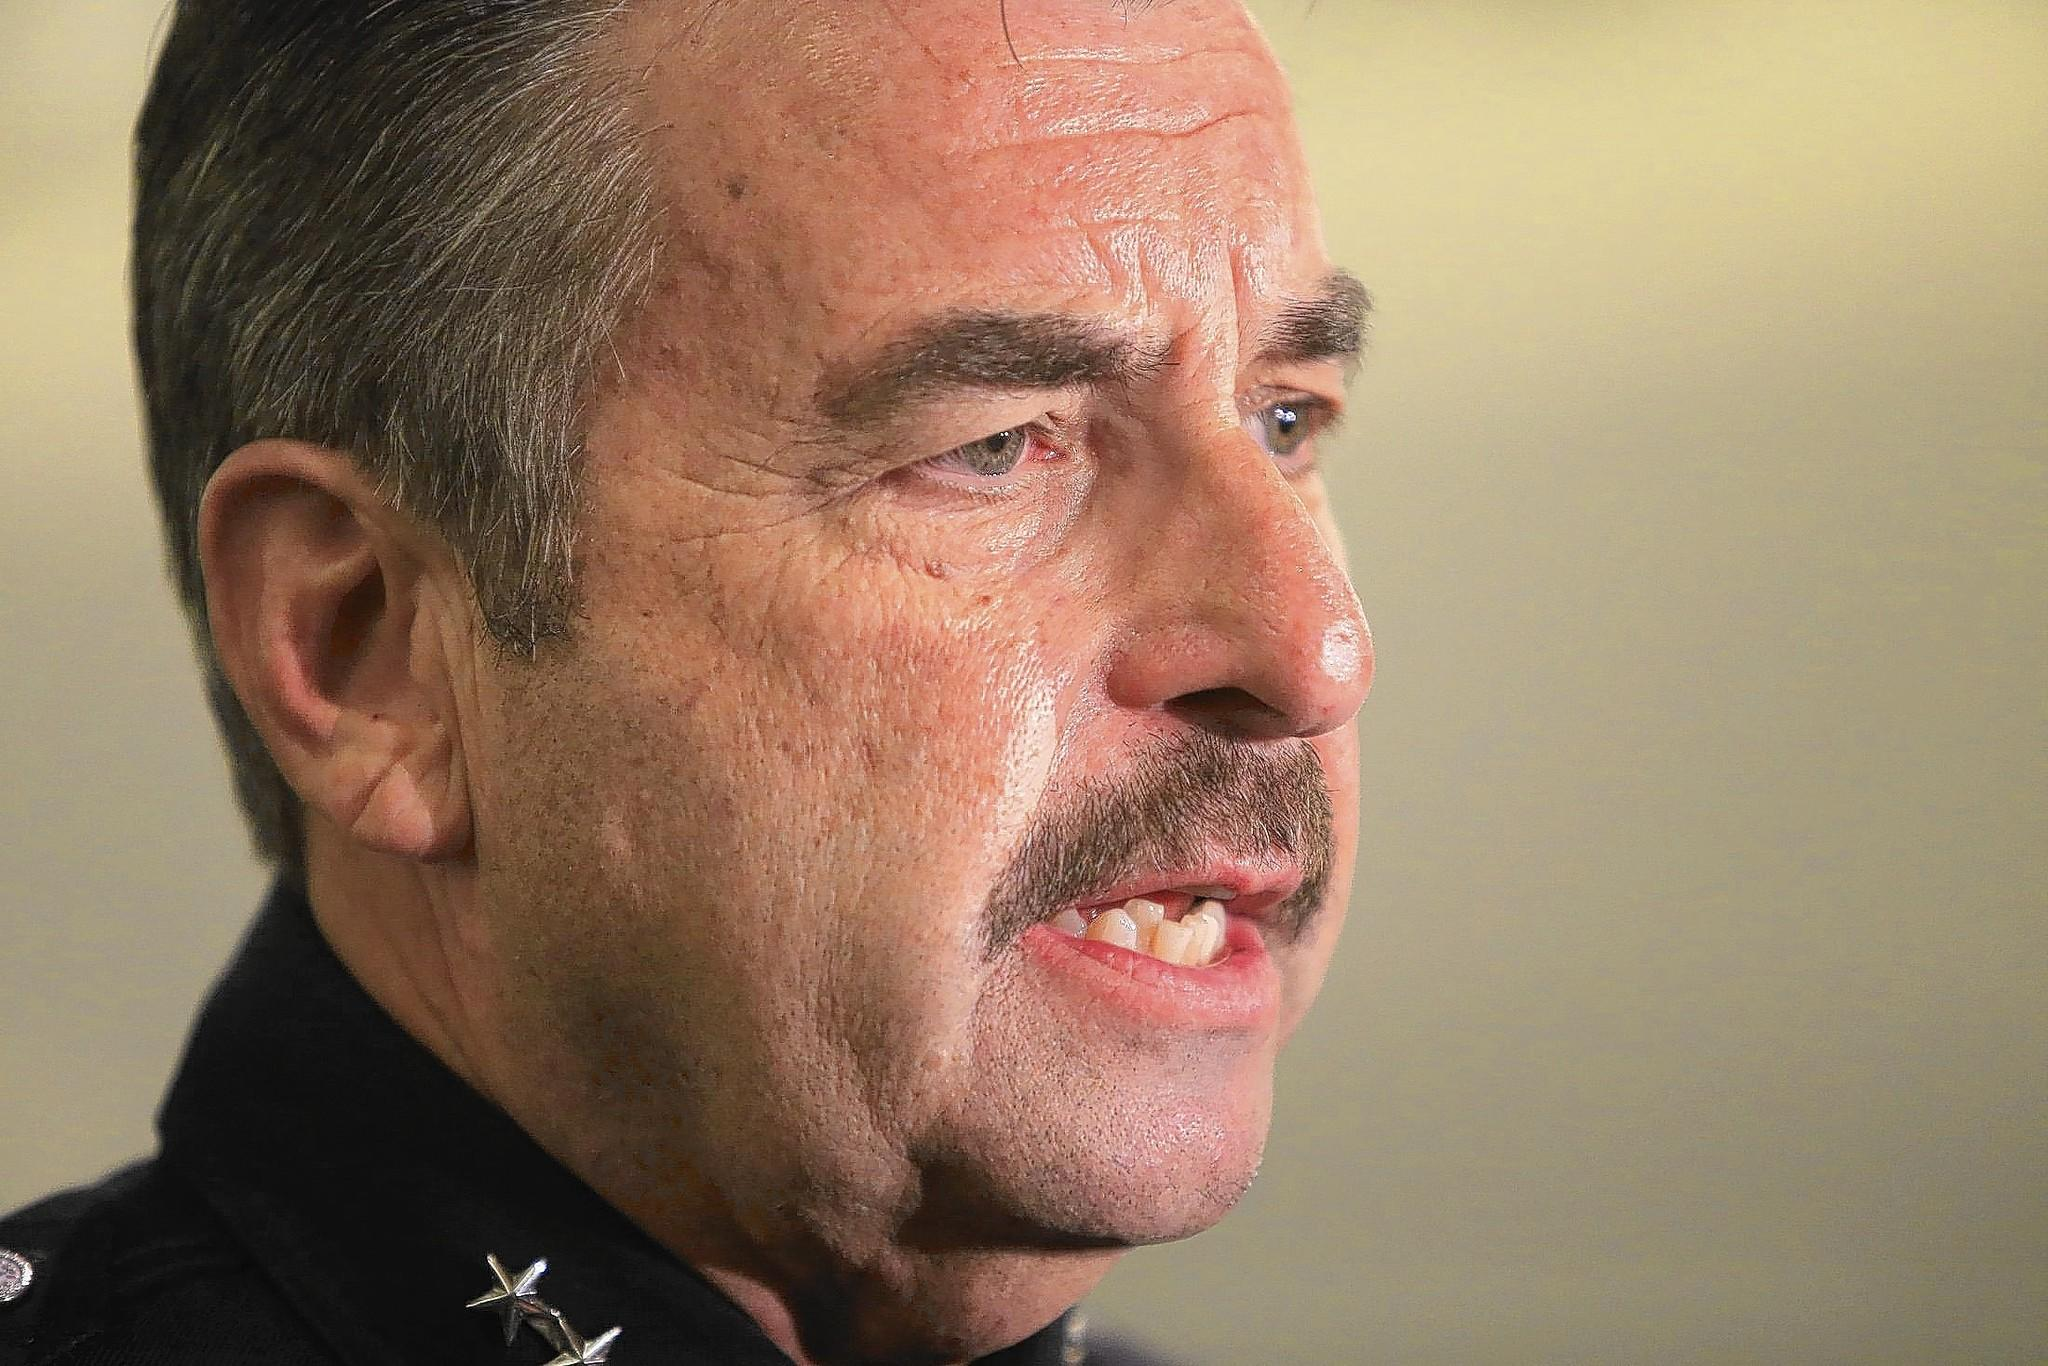 LAPD Chief Charlie Beck overruled a disciplinary board's recommendation to fire Officer Shaun Hillmann, whose father and uncle are department veterans.